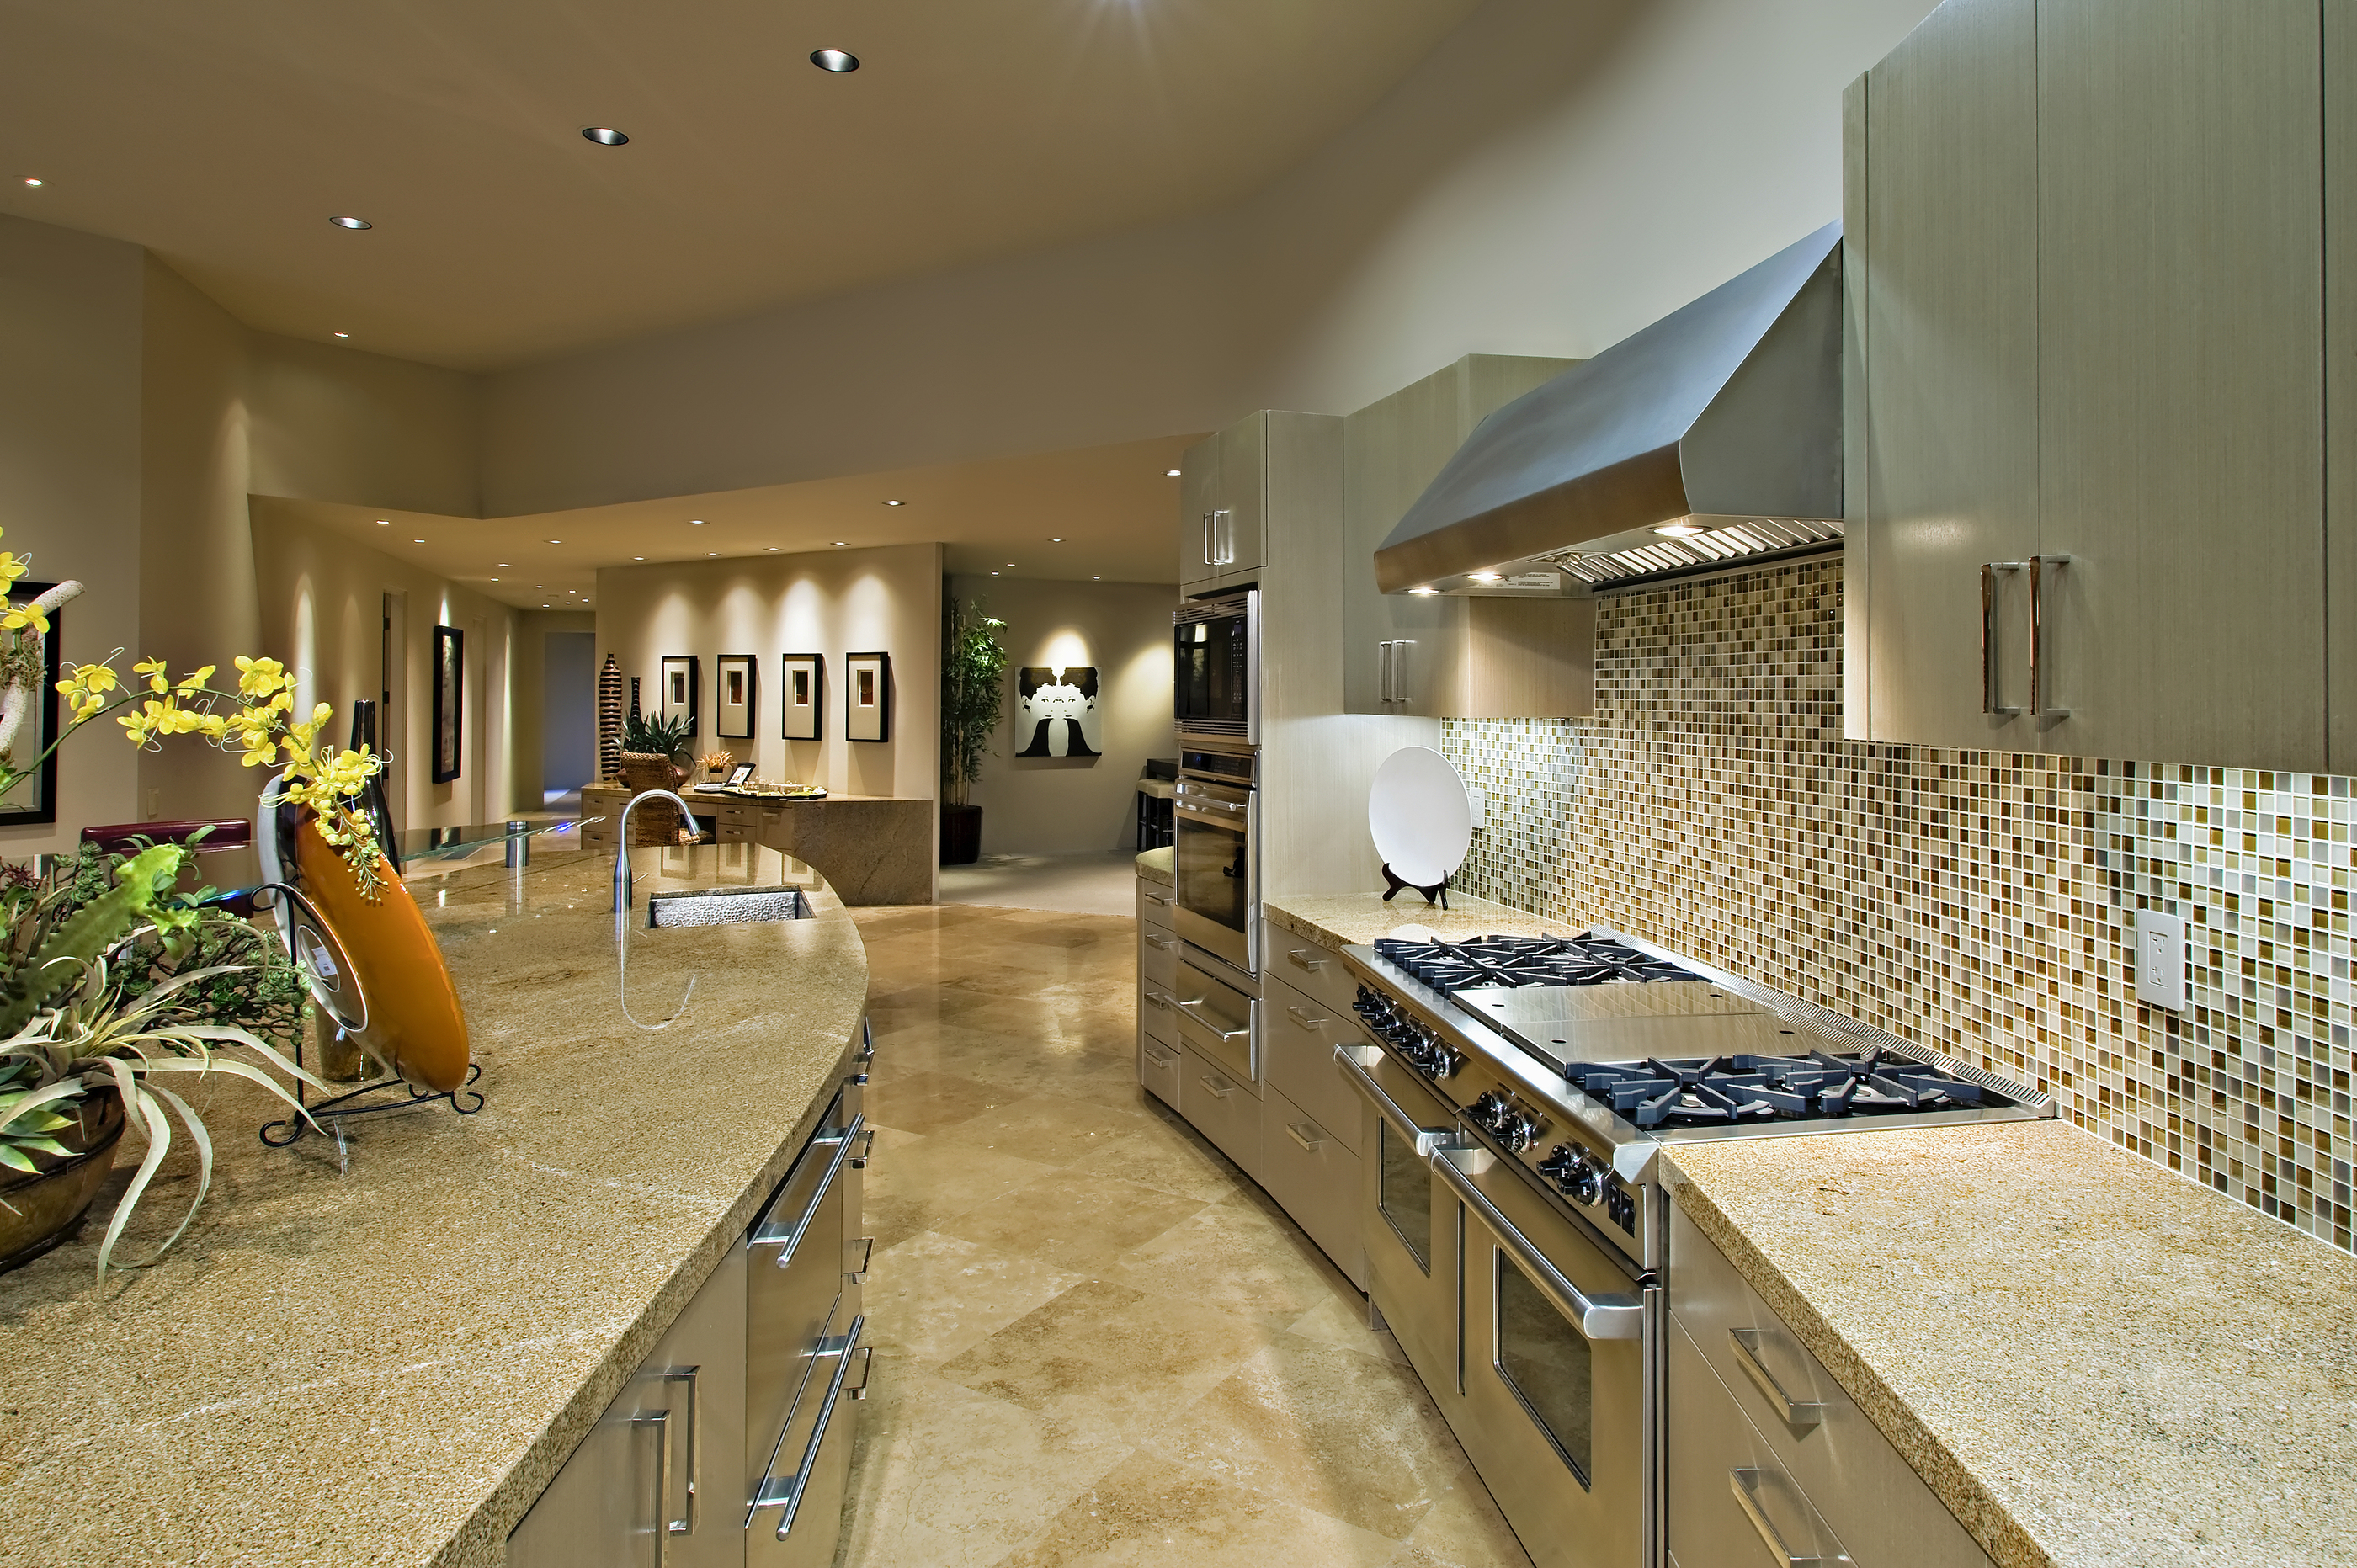 Plastering Services and Contractors